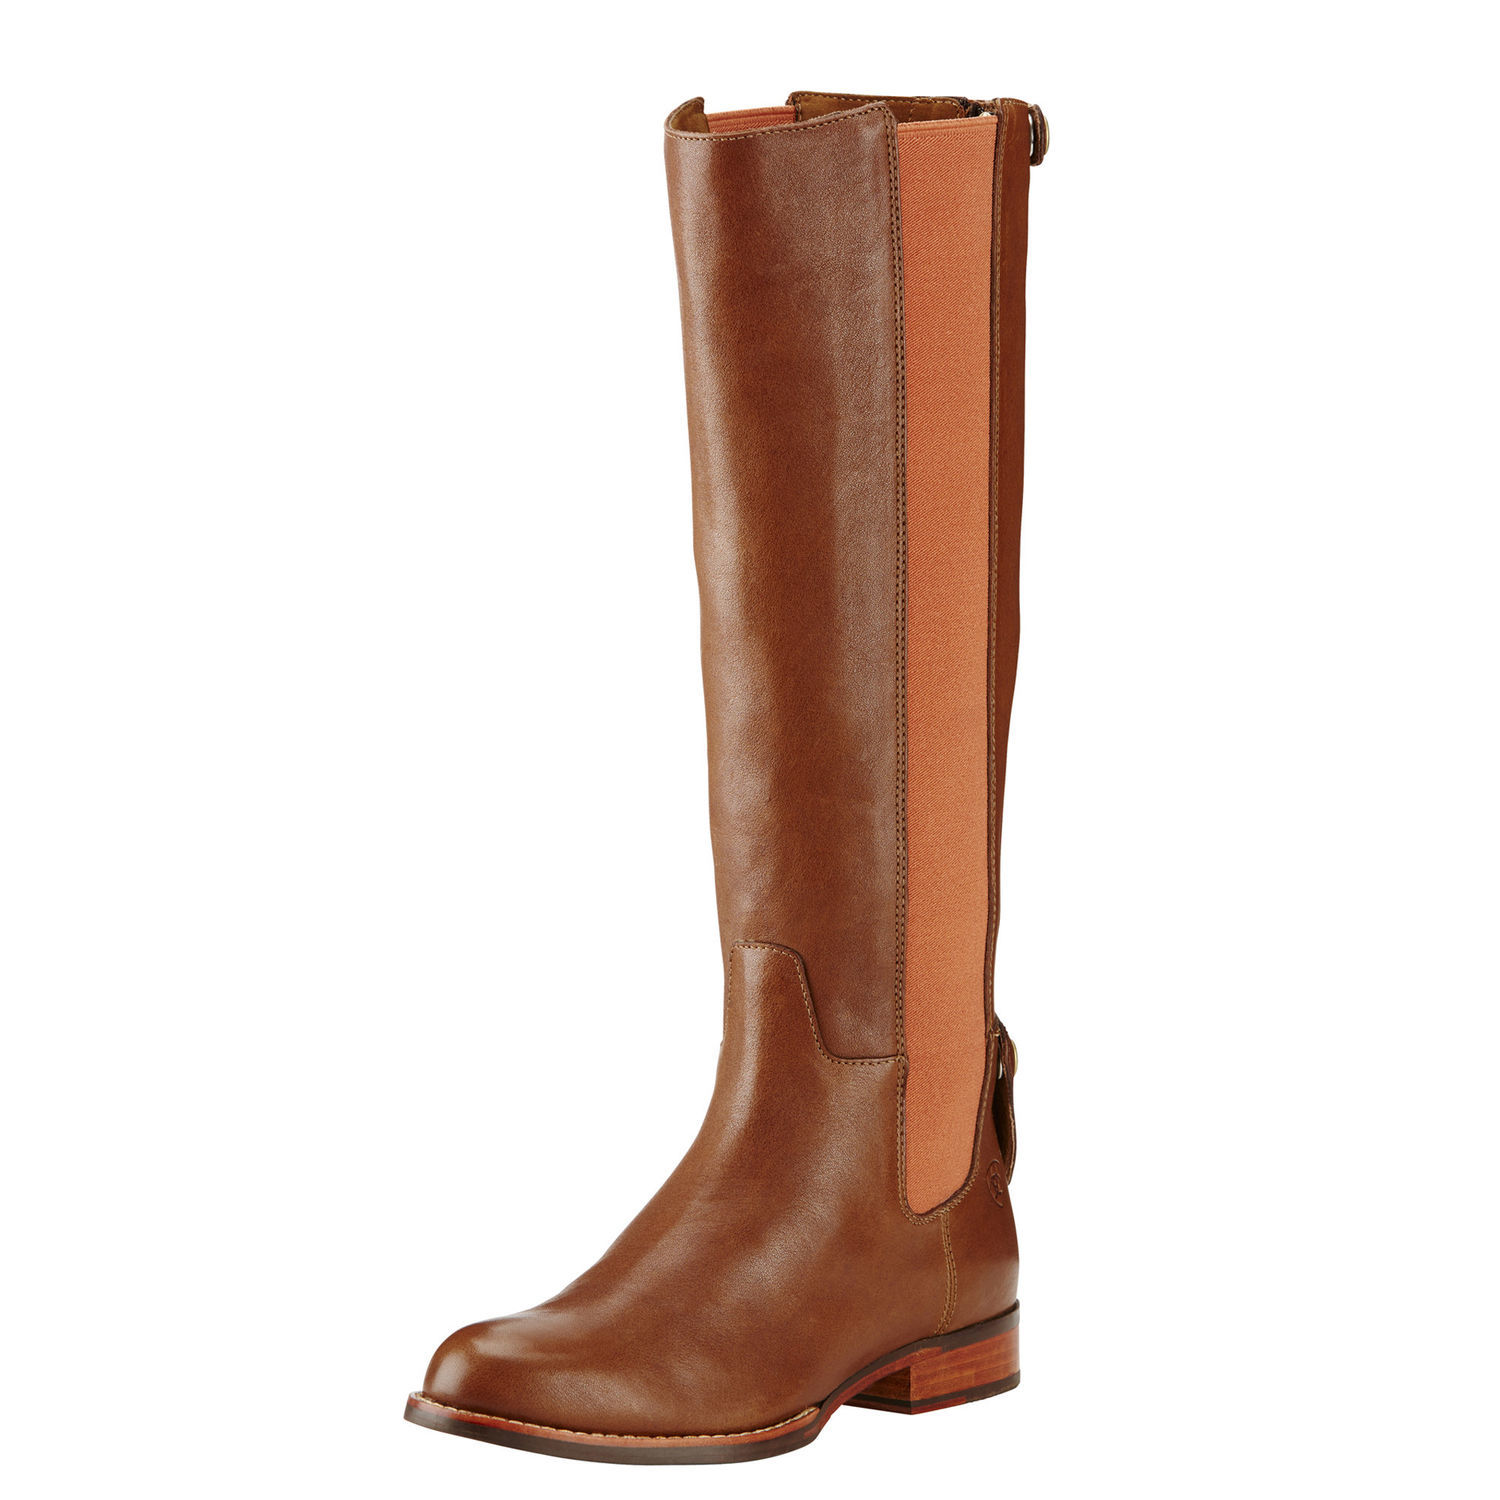 Ariat Womens Waverly Leather Knee High Riding Boots